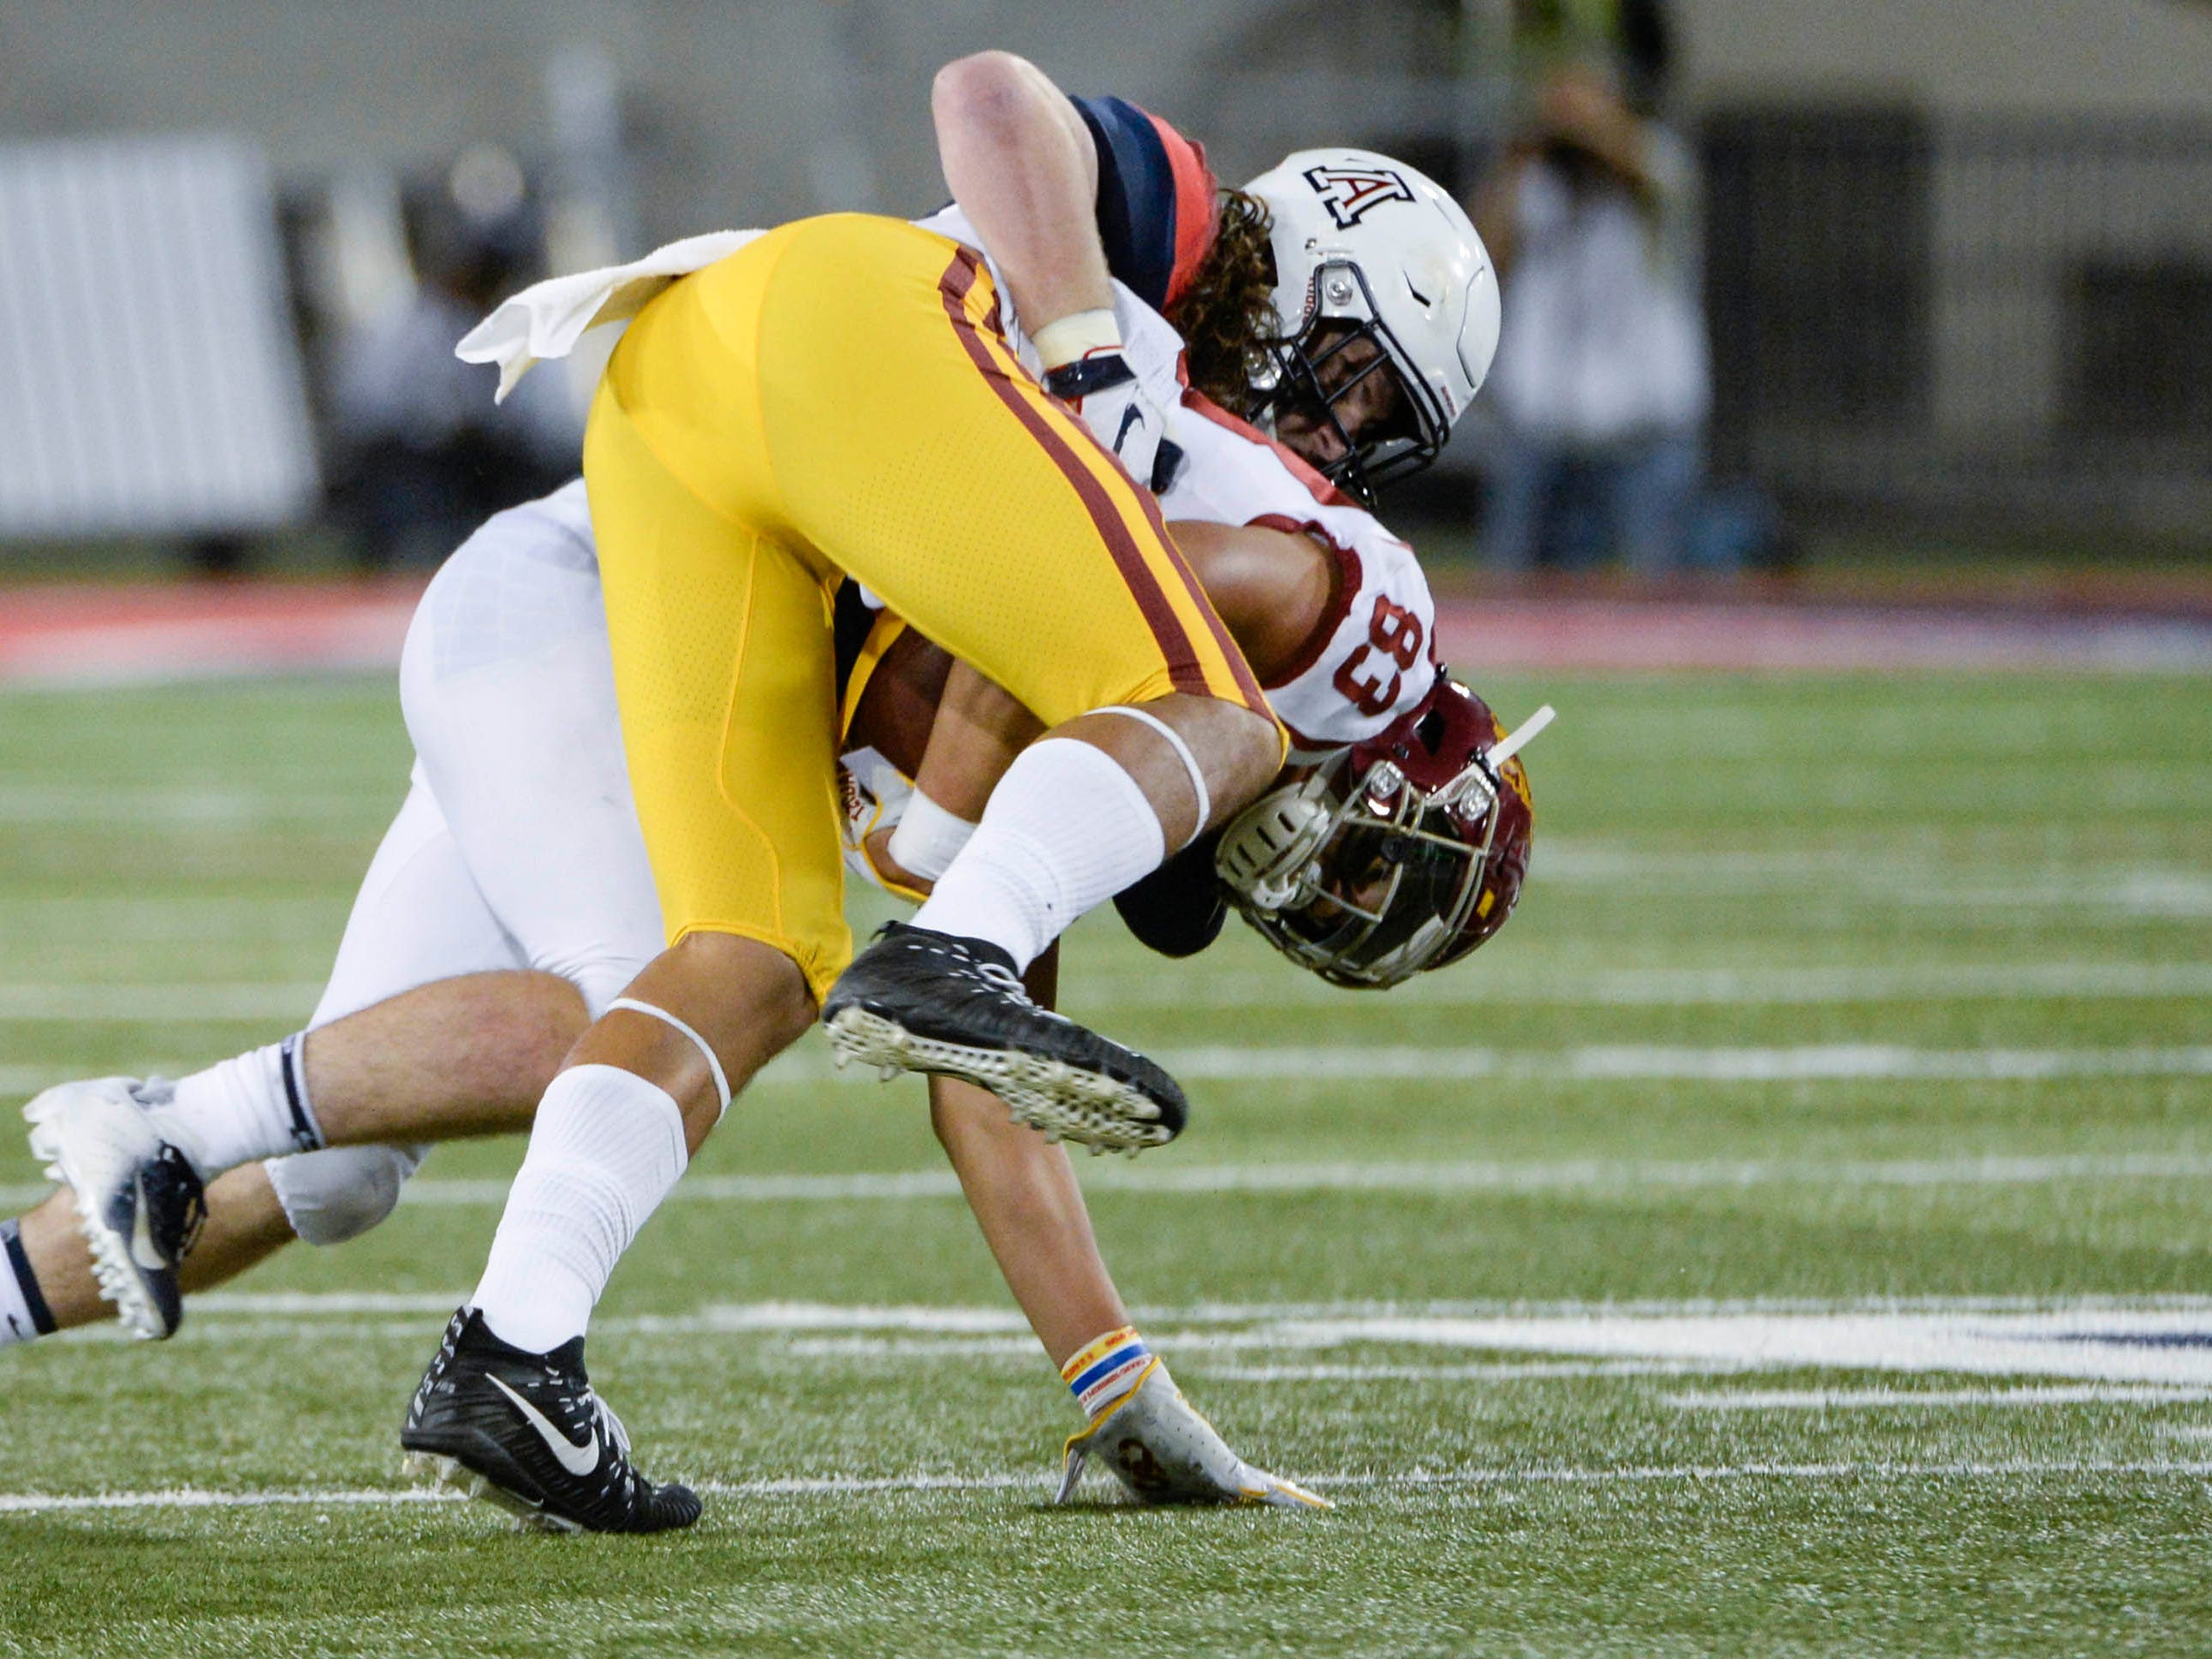 Sep 29, 2018; Tucson, AZ, USA; Southern California Trojans tight end Josh Falo (83) fumbles the ball as he is tackled by Arizona Wildcats linebacker Colin Schooler (7) during the second half at Arizona Stadium. Mandatory Credit: Casey Sapio-USA TODAY Sports